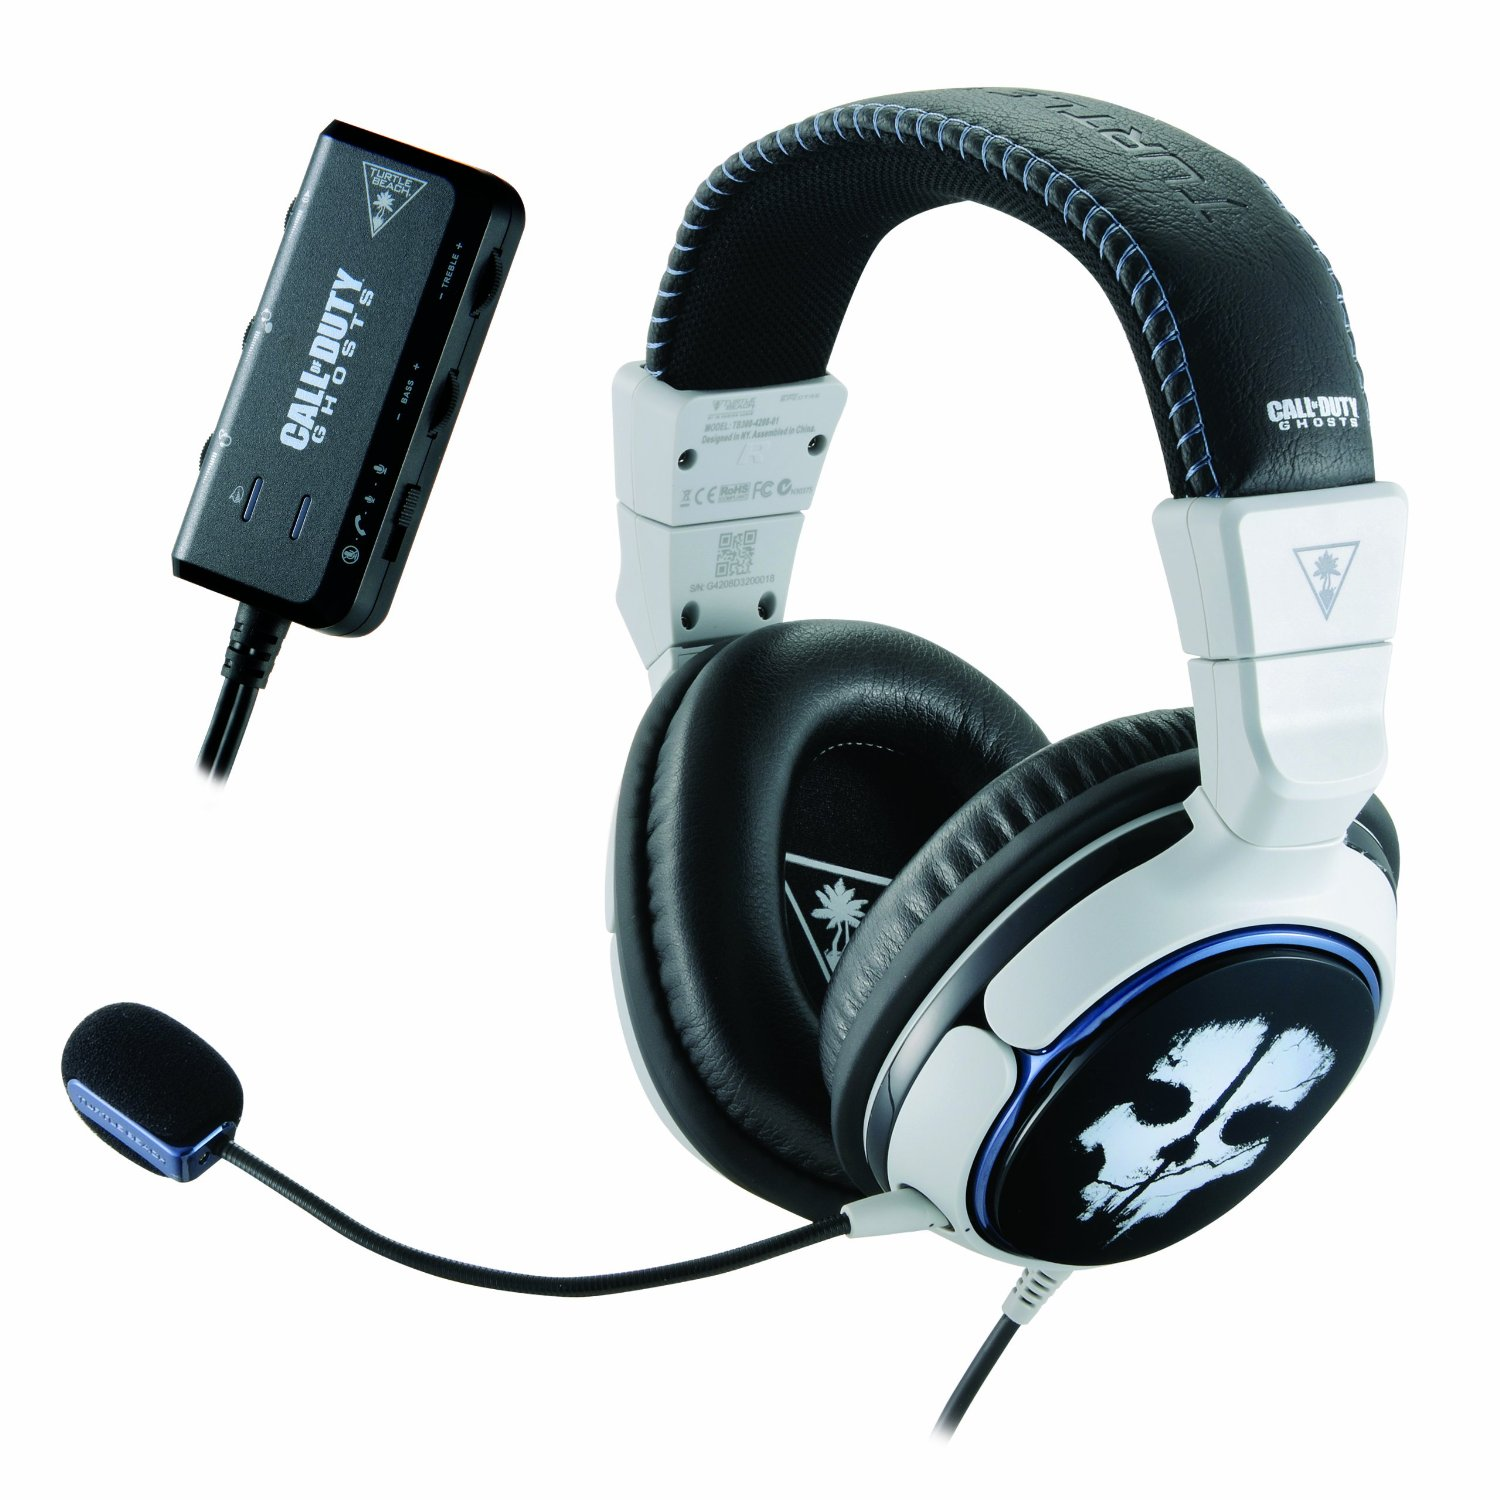 Call Of Duty Ghosts Headset Collection Review Ear Force Spectre Sony Playstation 4 Ps4 Cod Limited Edition Non Dvd